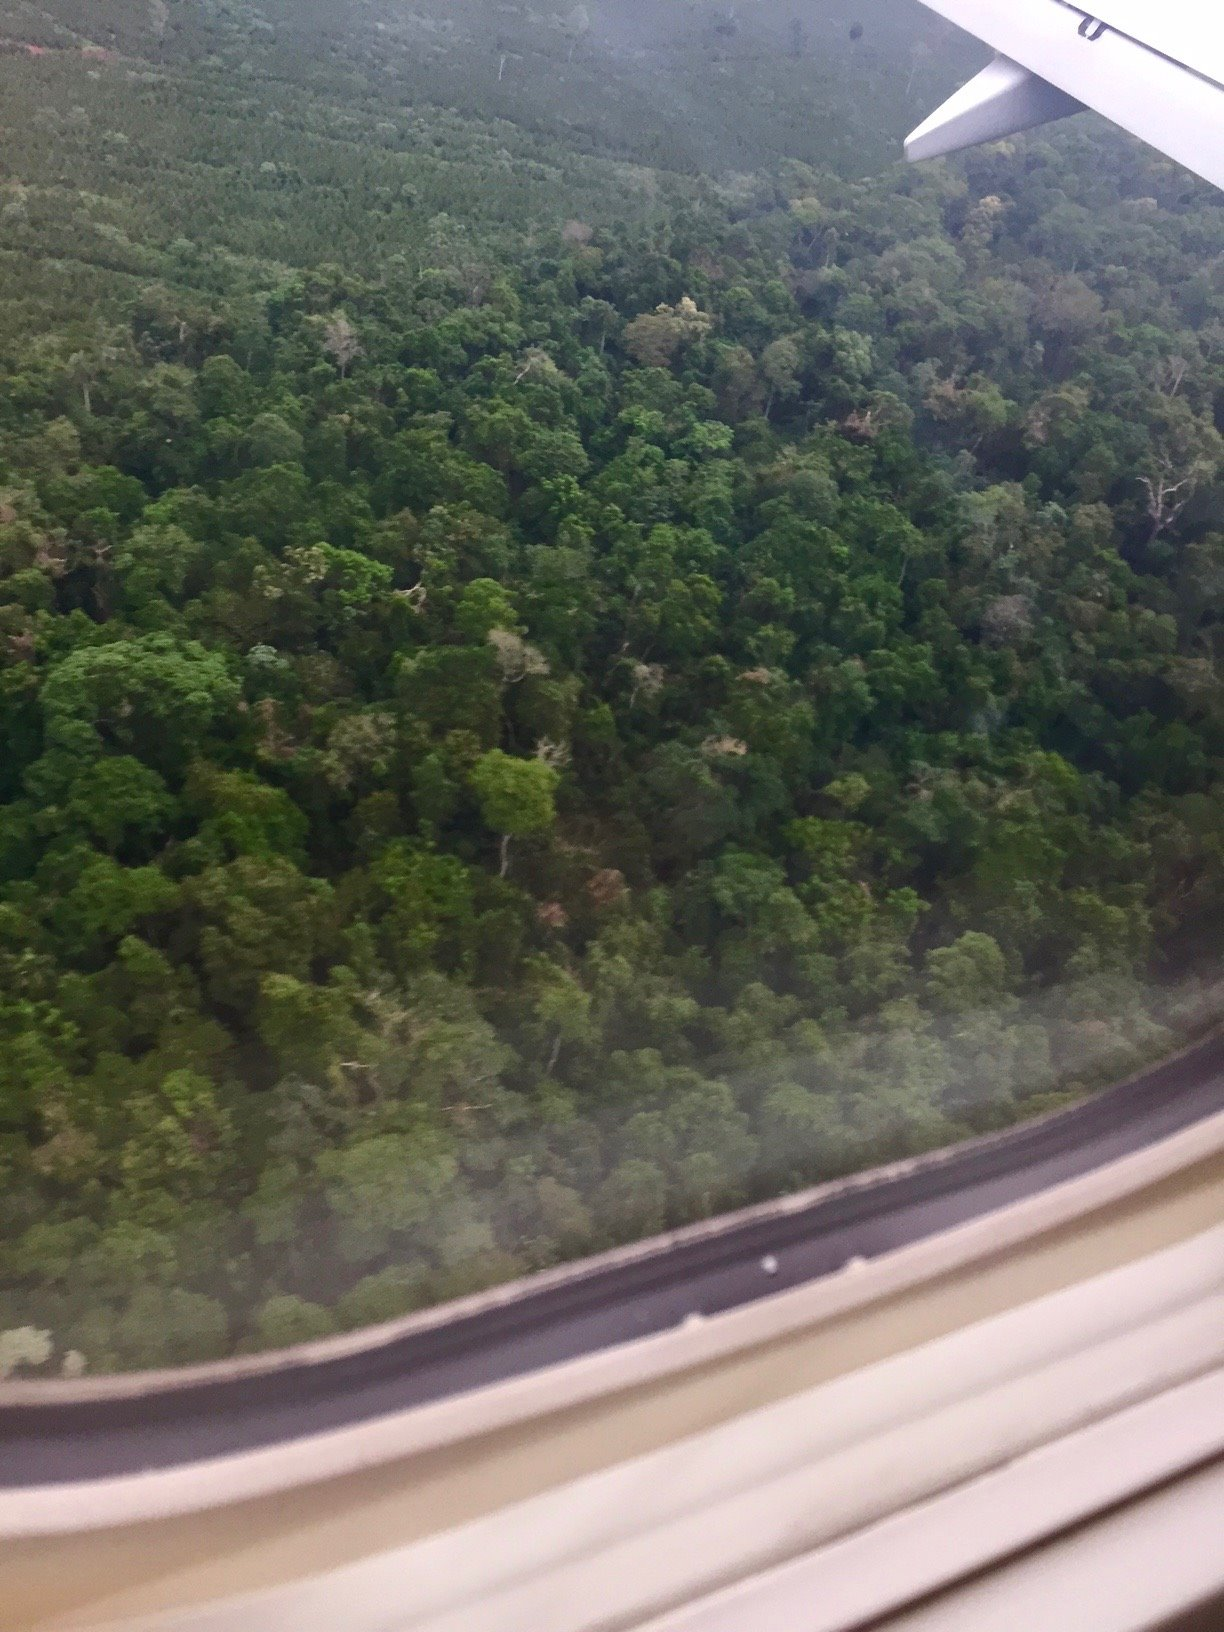 Flying over the jungle at the Brazil/Argentine border on the way to Puerto Iguazu.